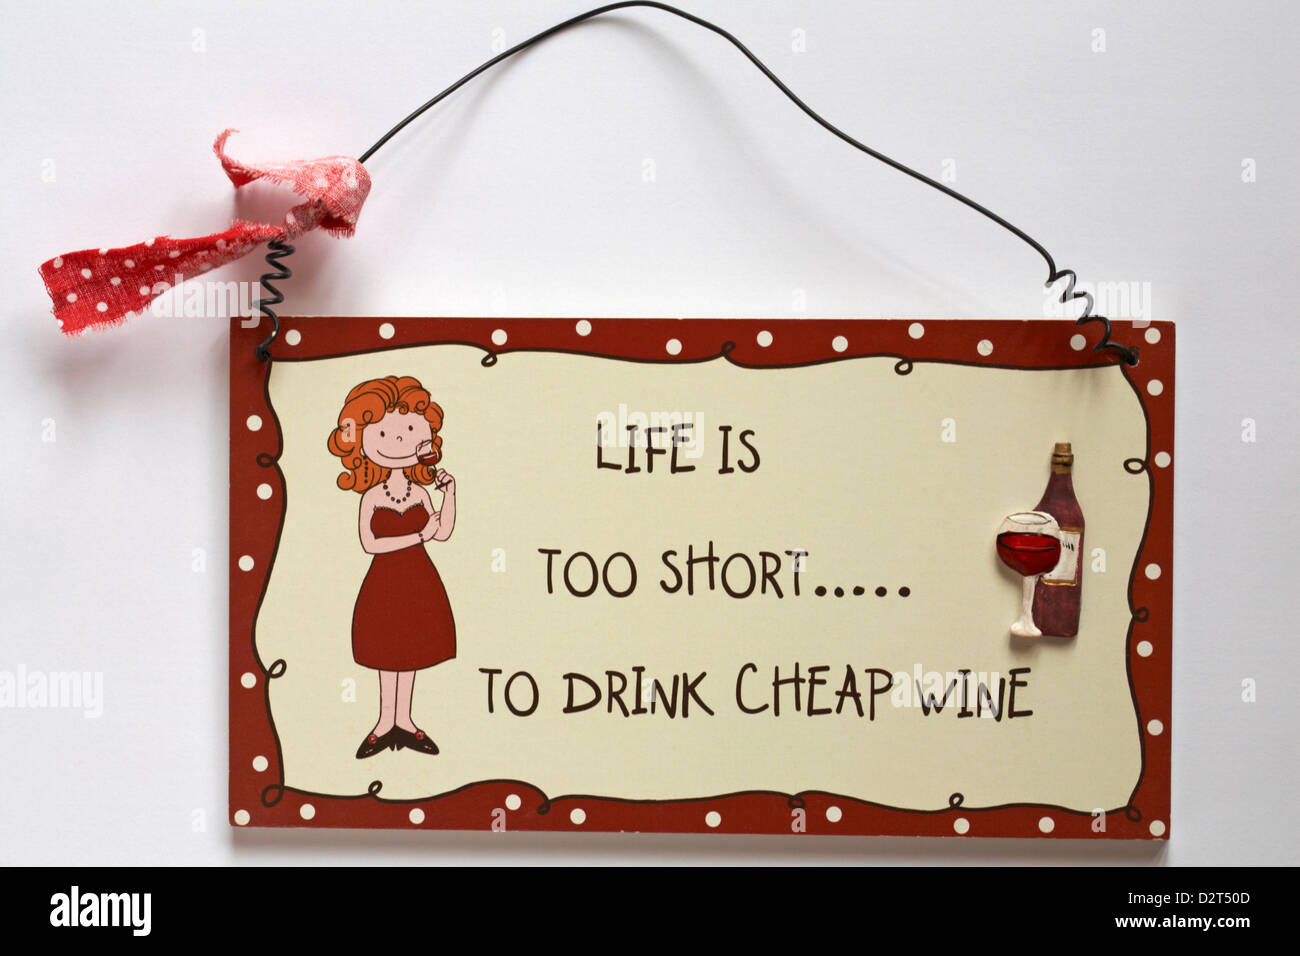 Life is too short to drink cheap wine hanging plaque isolated on white background - Stock Image